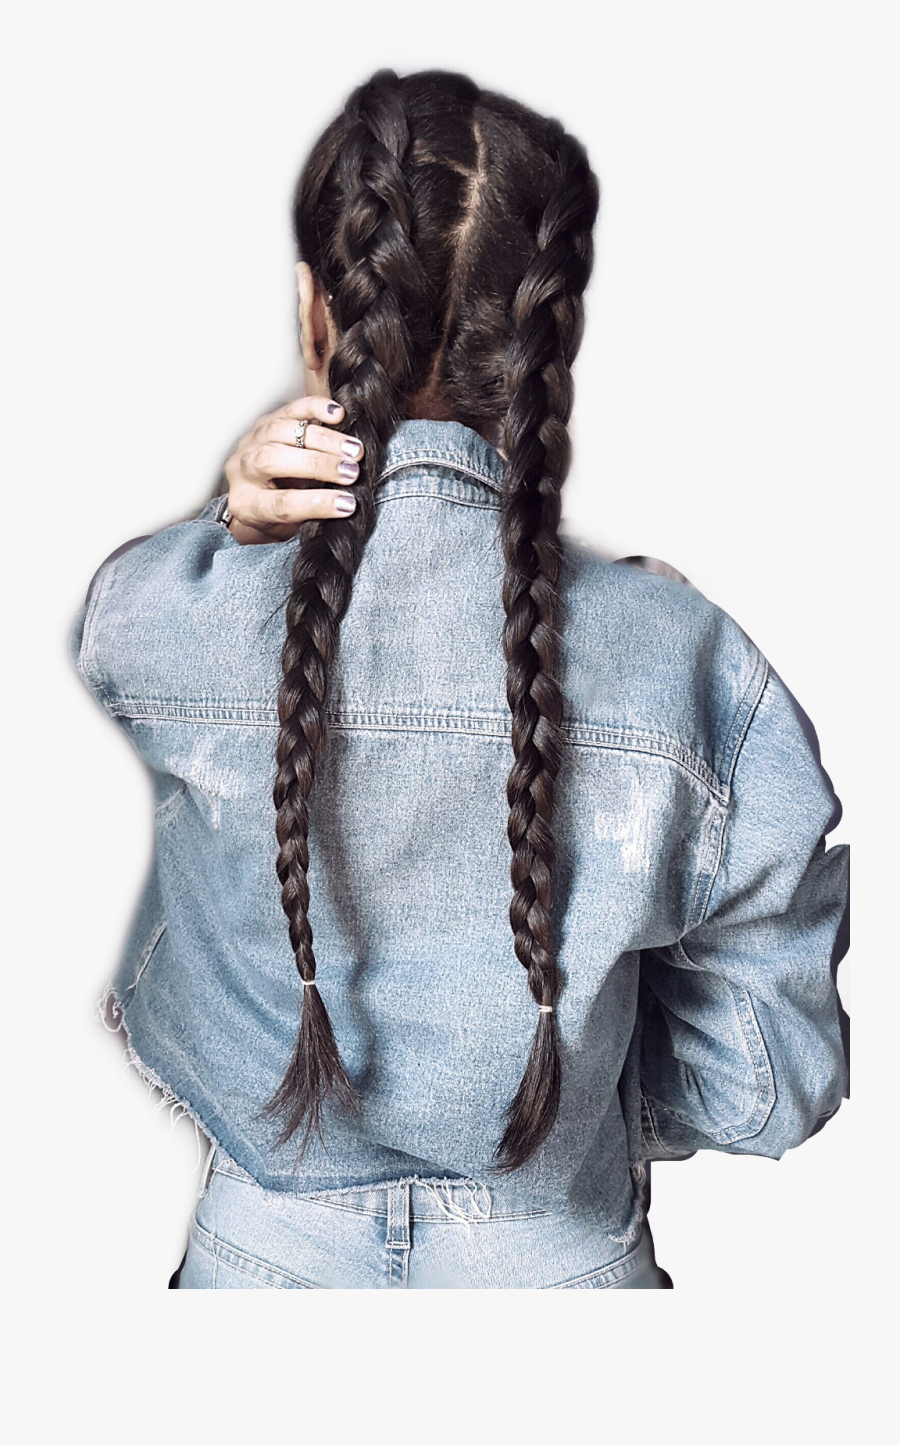 #braids #hair #longhair #woman #girl #freetoedit - Girl In Braids Quotes, Transparent Clipart